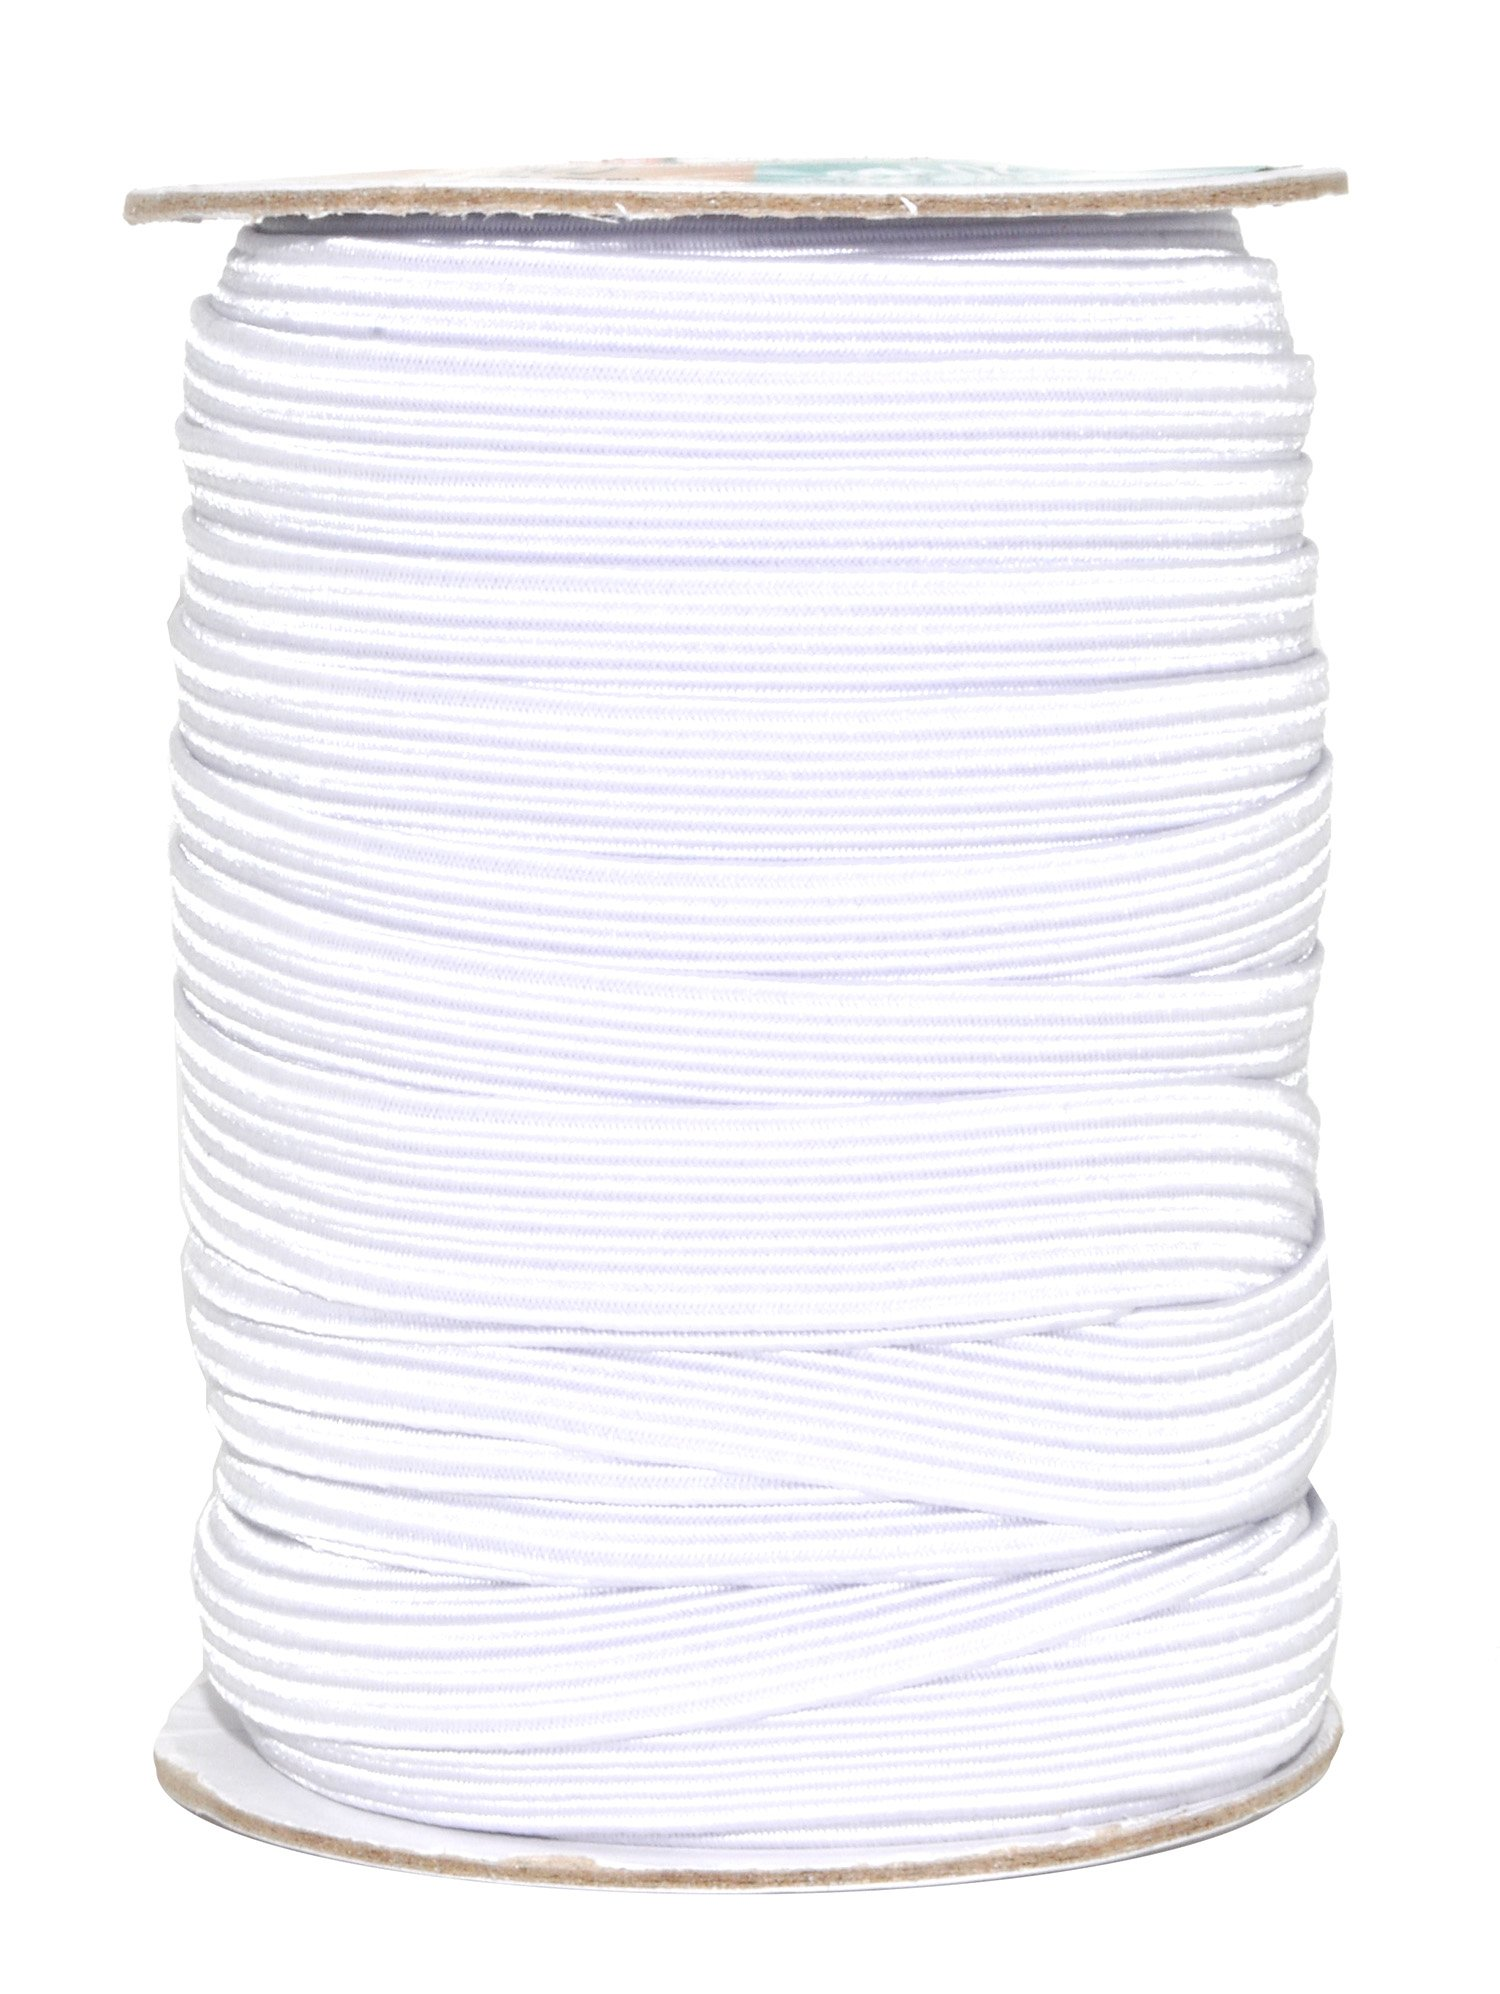 12mm flat white woven elastic crafting cord dressmaking waist band tailoring